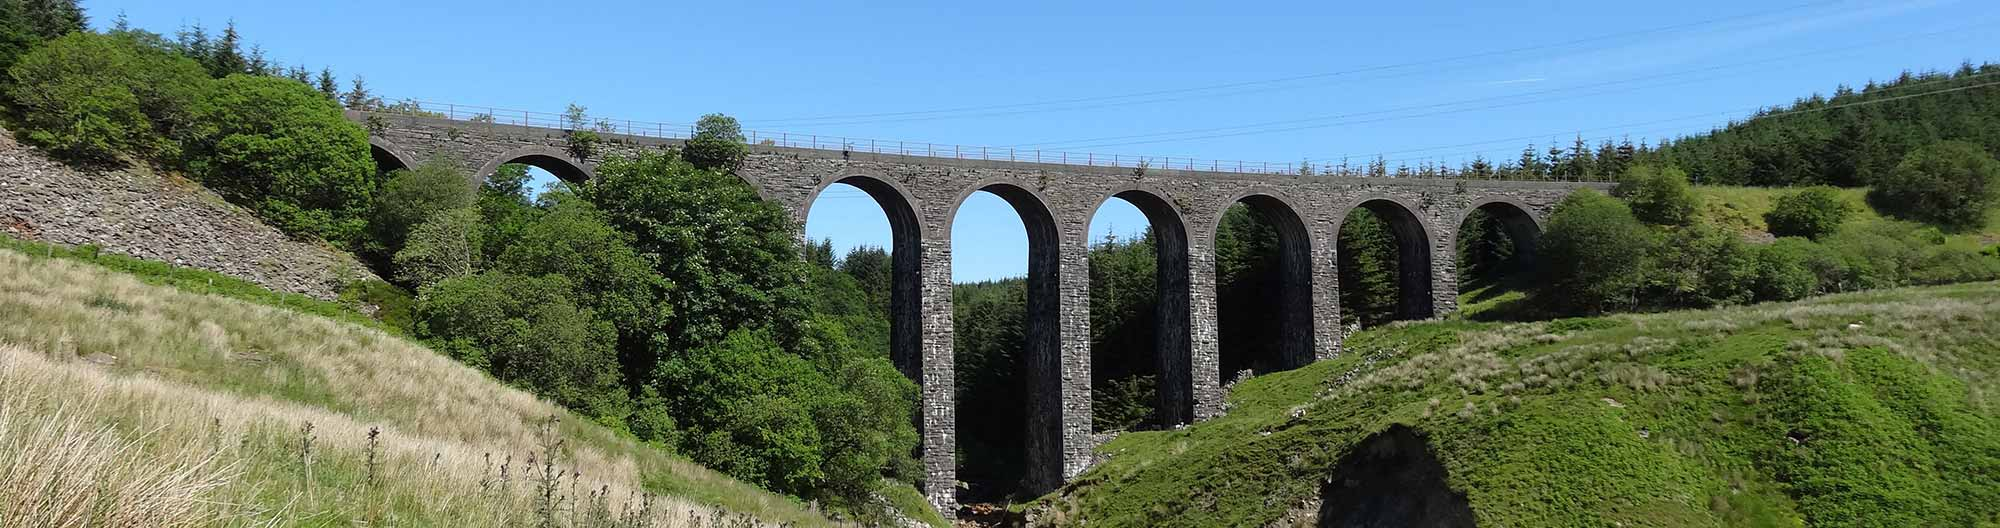 Cwm Prysor Viaduct from the River